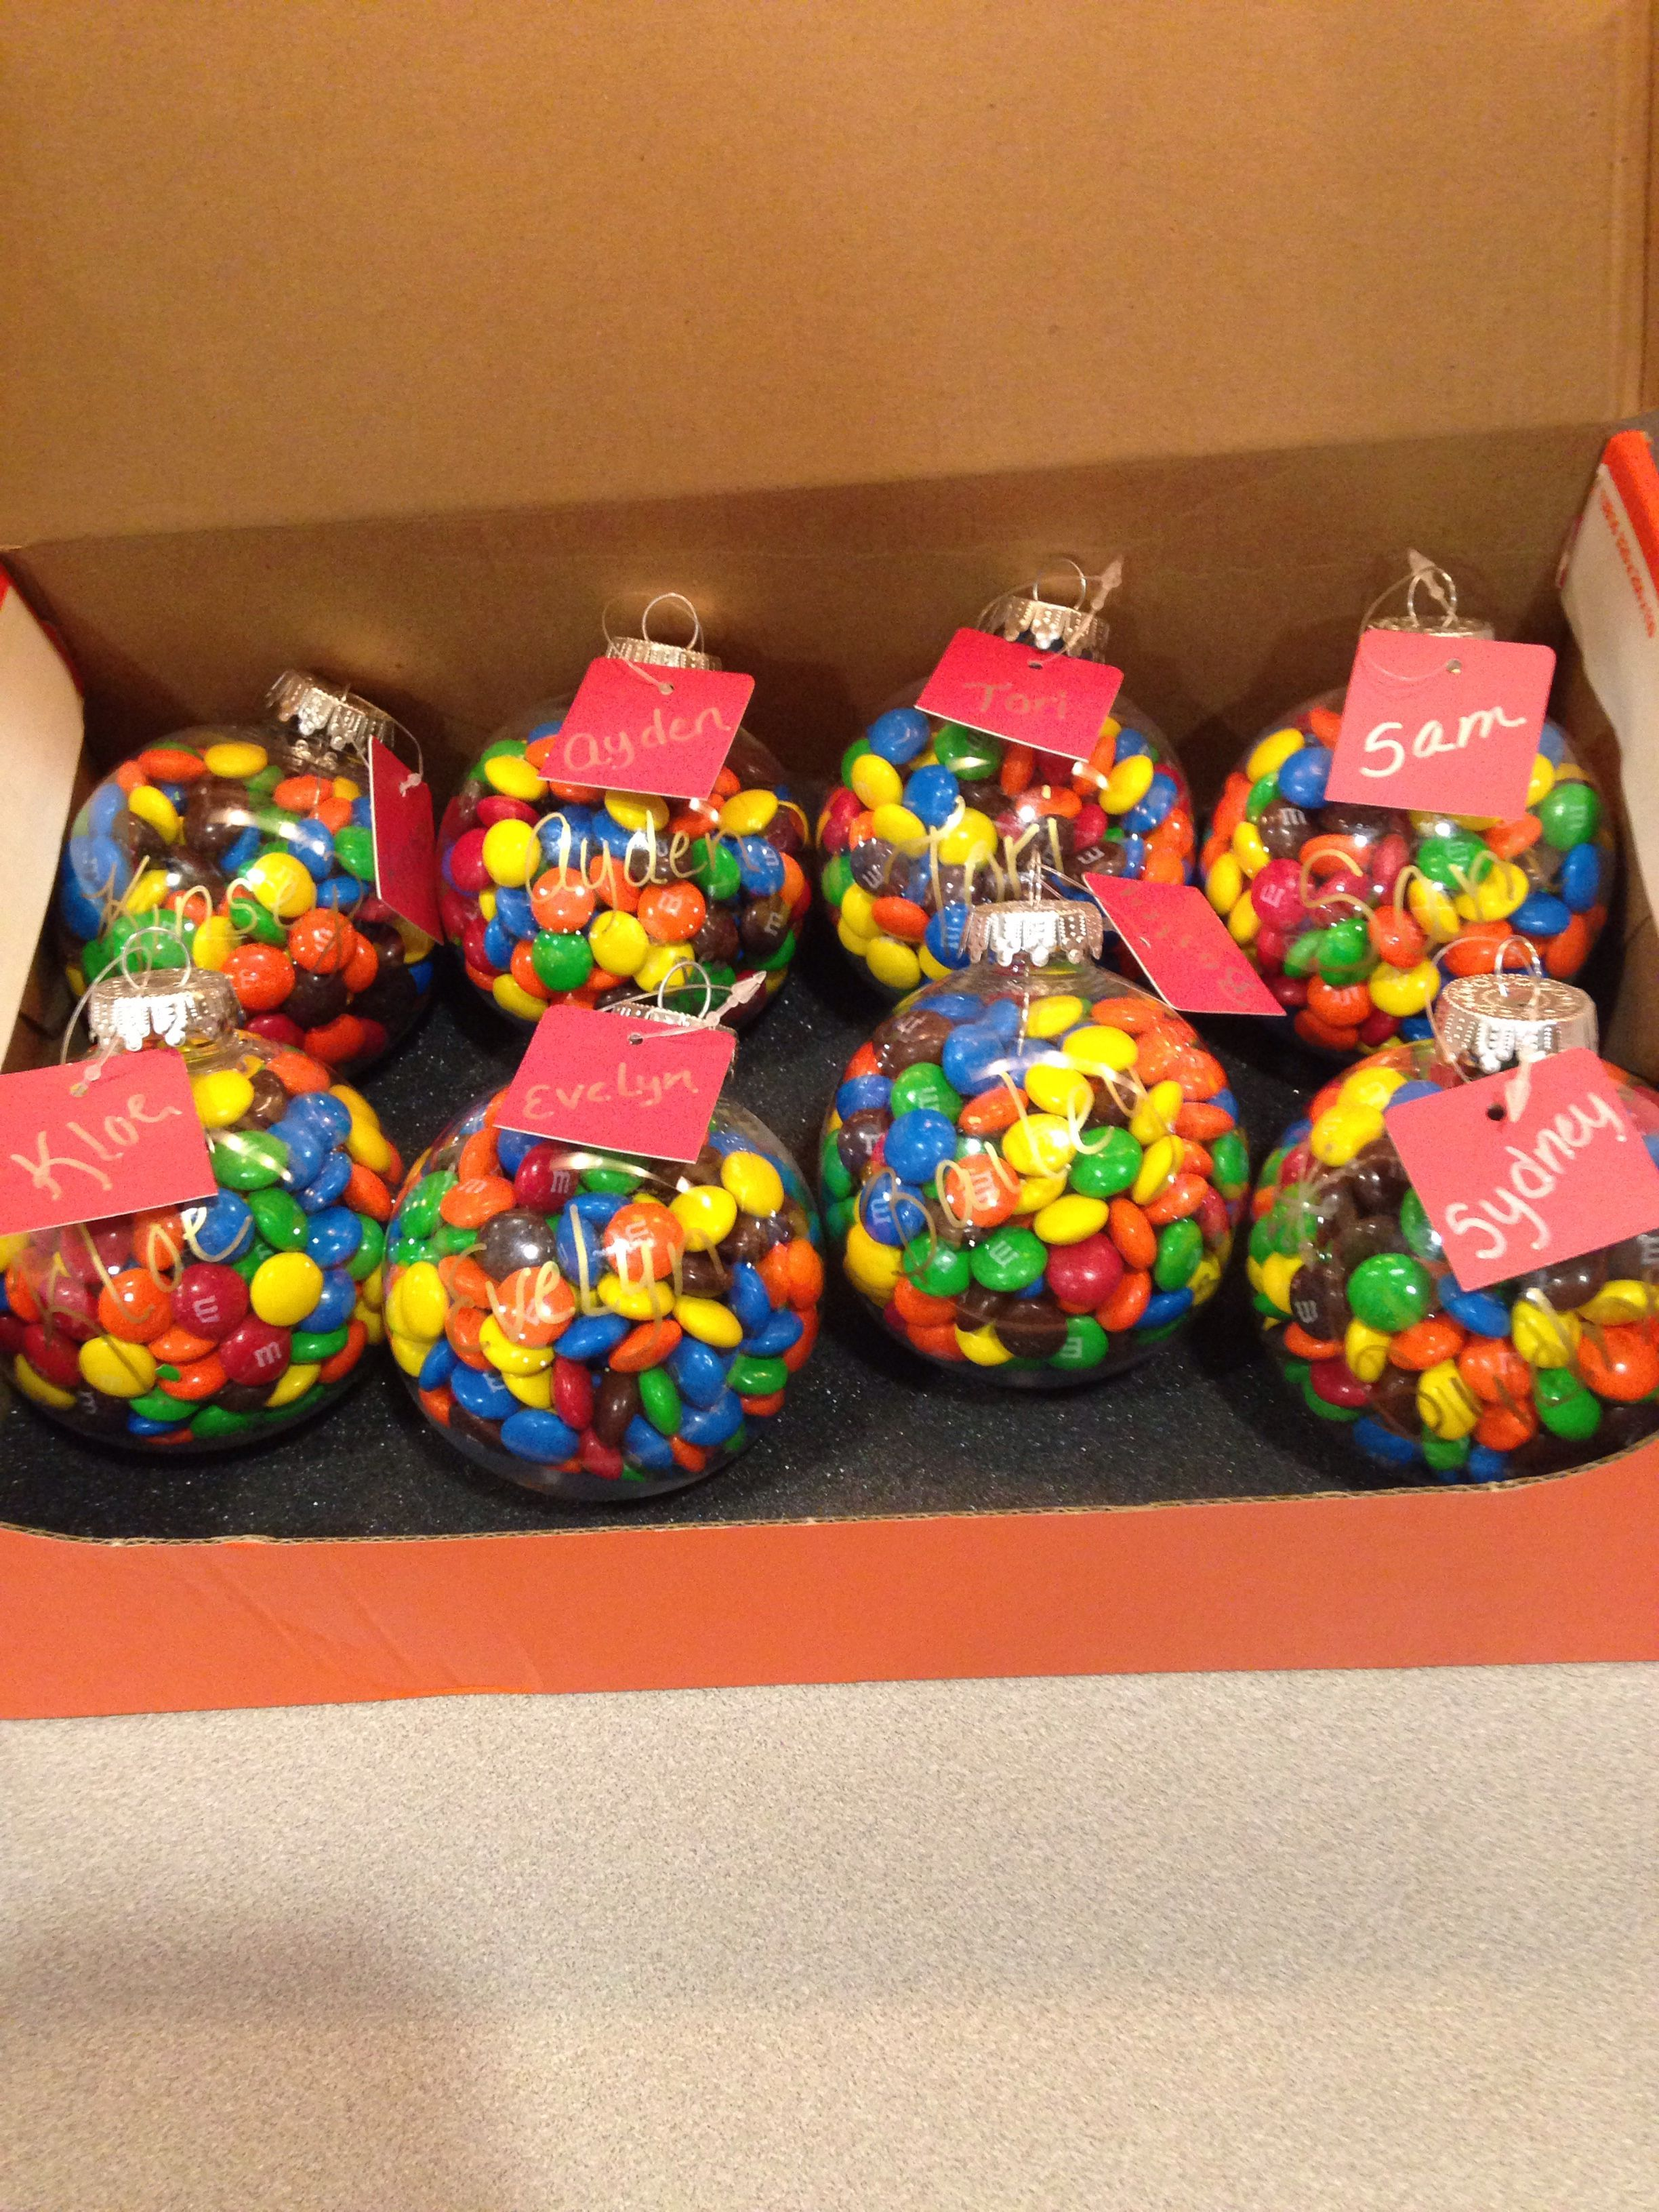 Little Christmas gift for friends cheep plastic Christmas bulb some m&m's and name tags http://www.giftideascorner.com/gifts-coworkers/